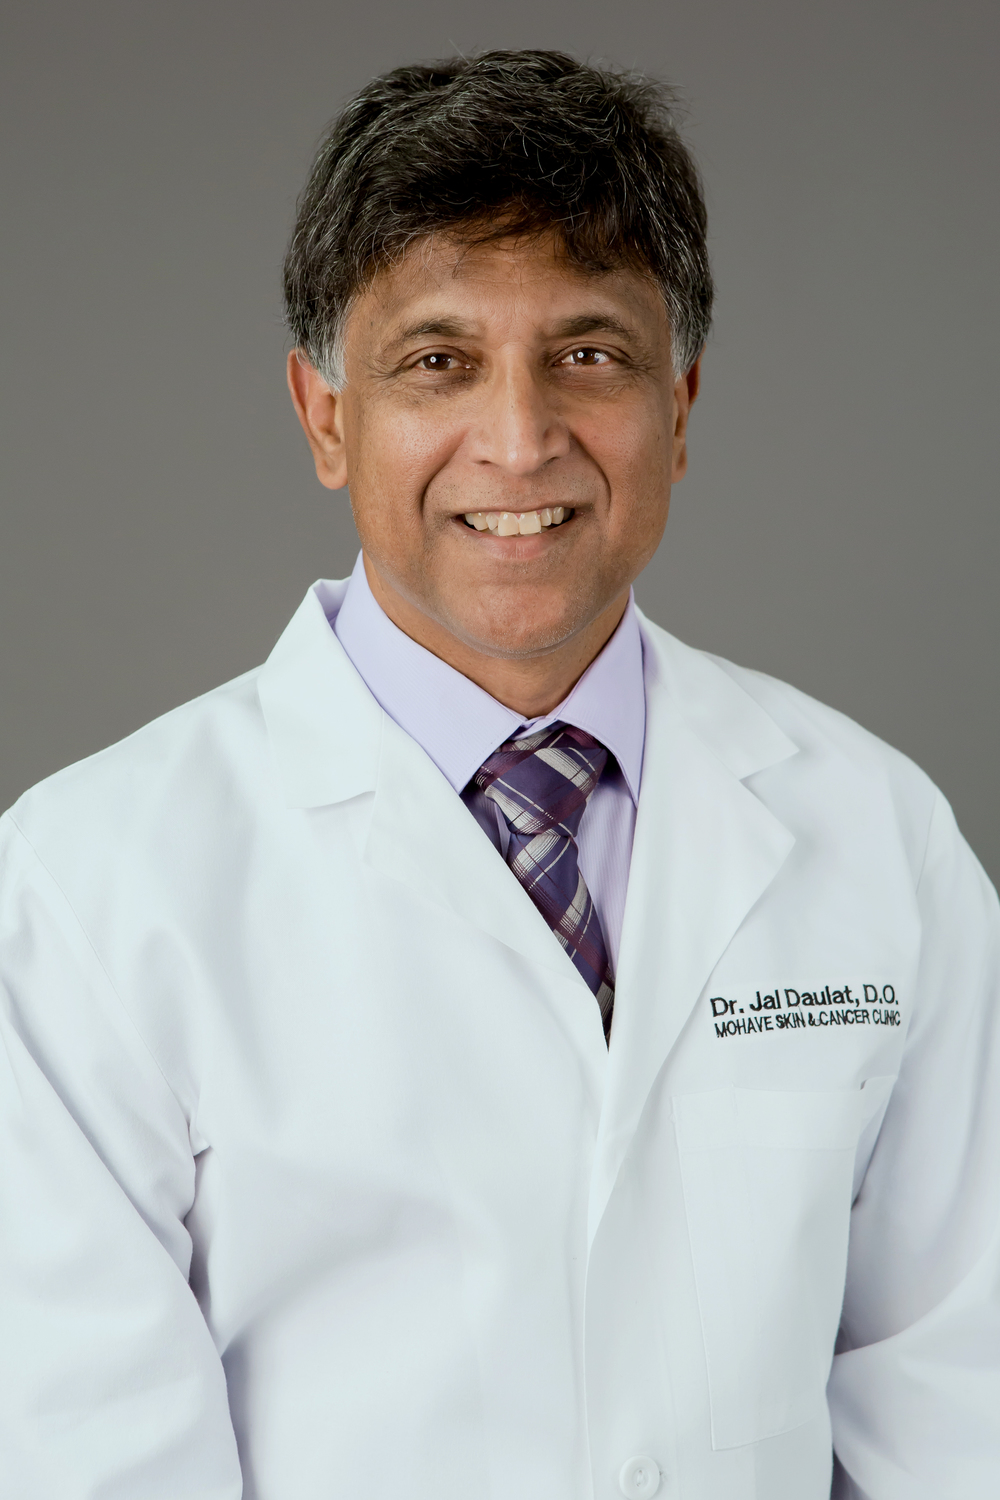 Jaldeep Daulat, D.O. Board Certified Mohs Surgeon